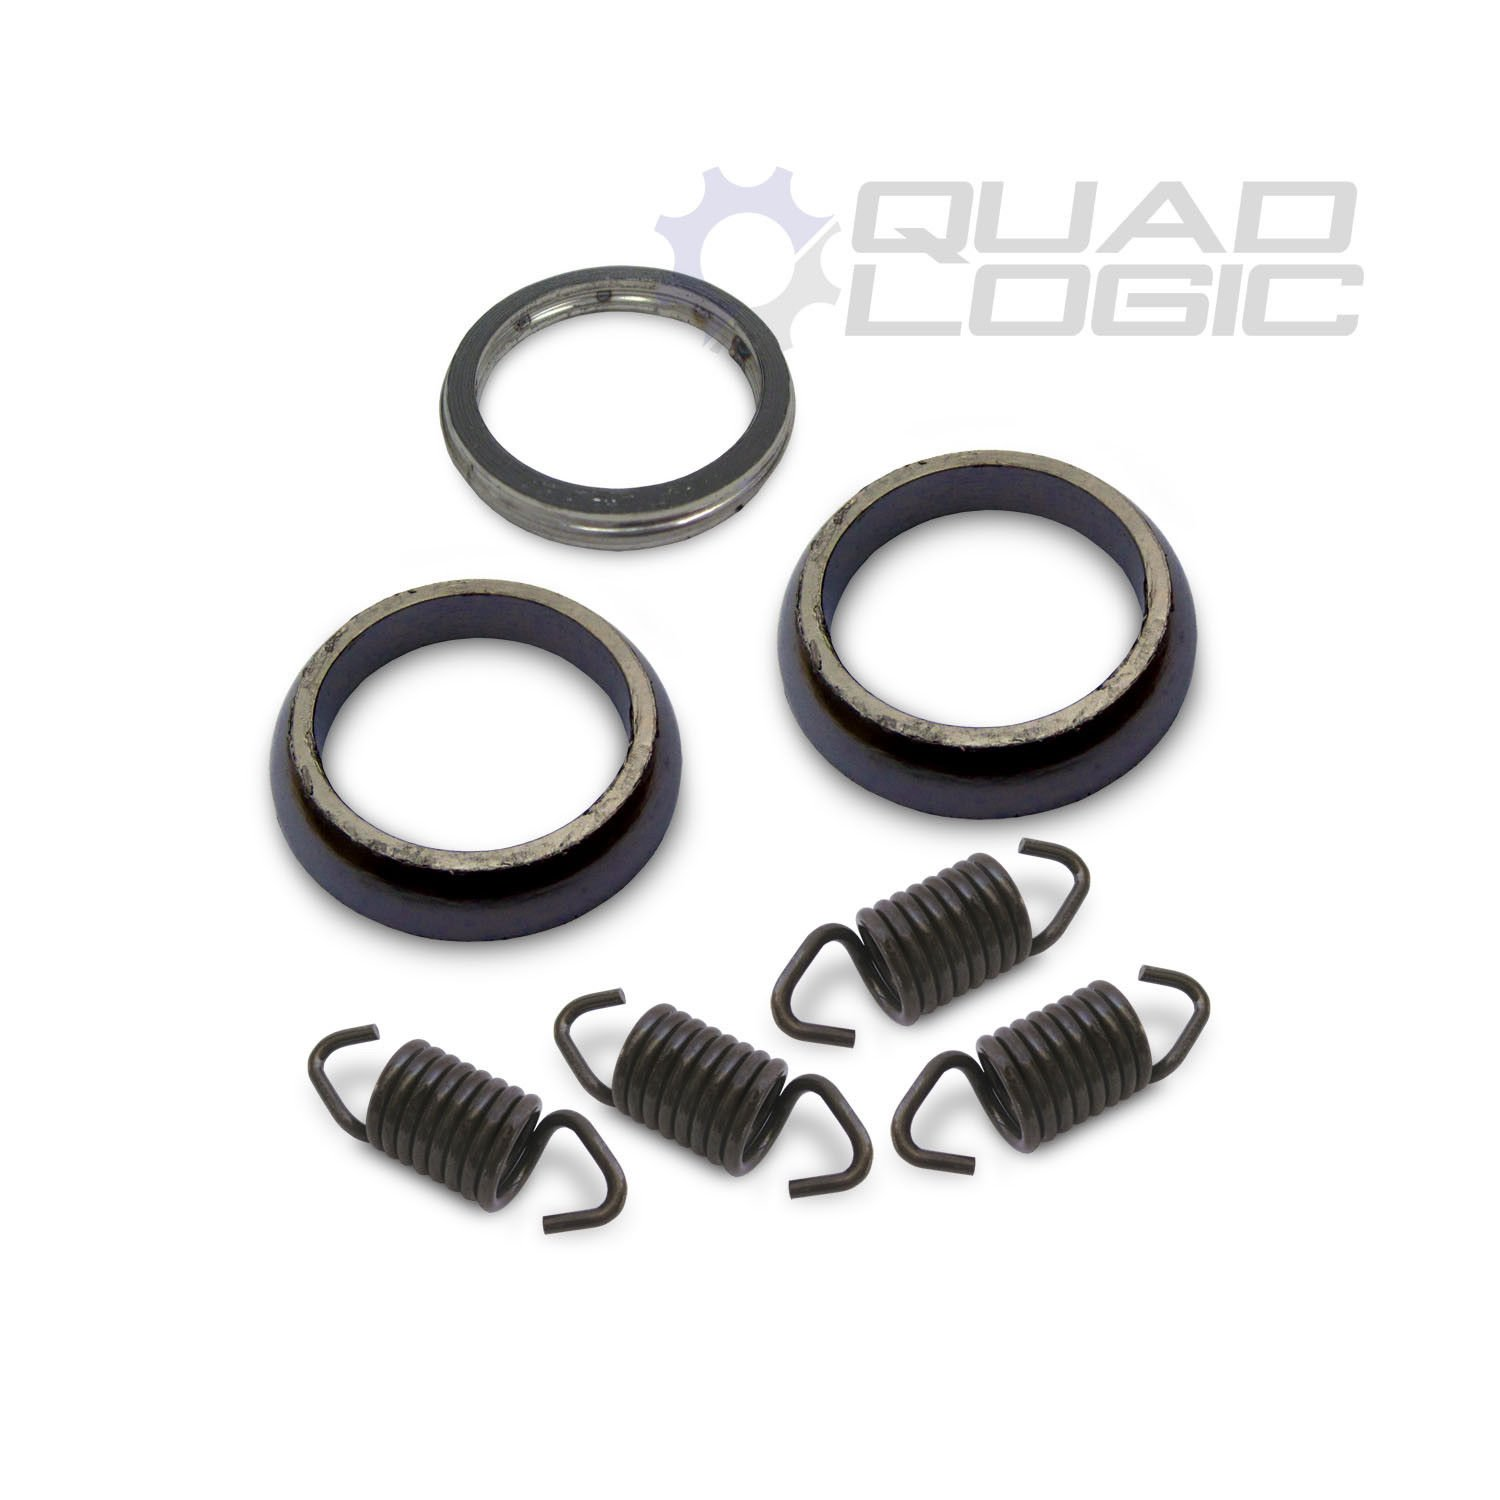 Polaris Sportsman 450 570 Exhaust Gasket /& Spring Rebuild Kit 5256385 2014-18